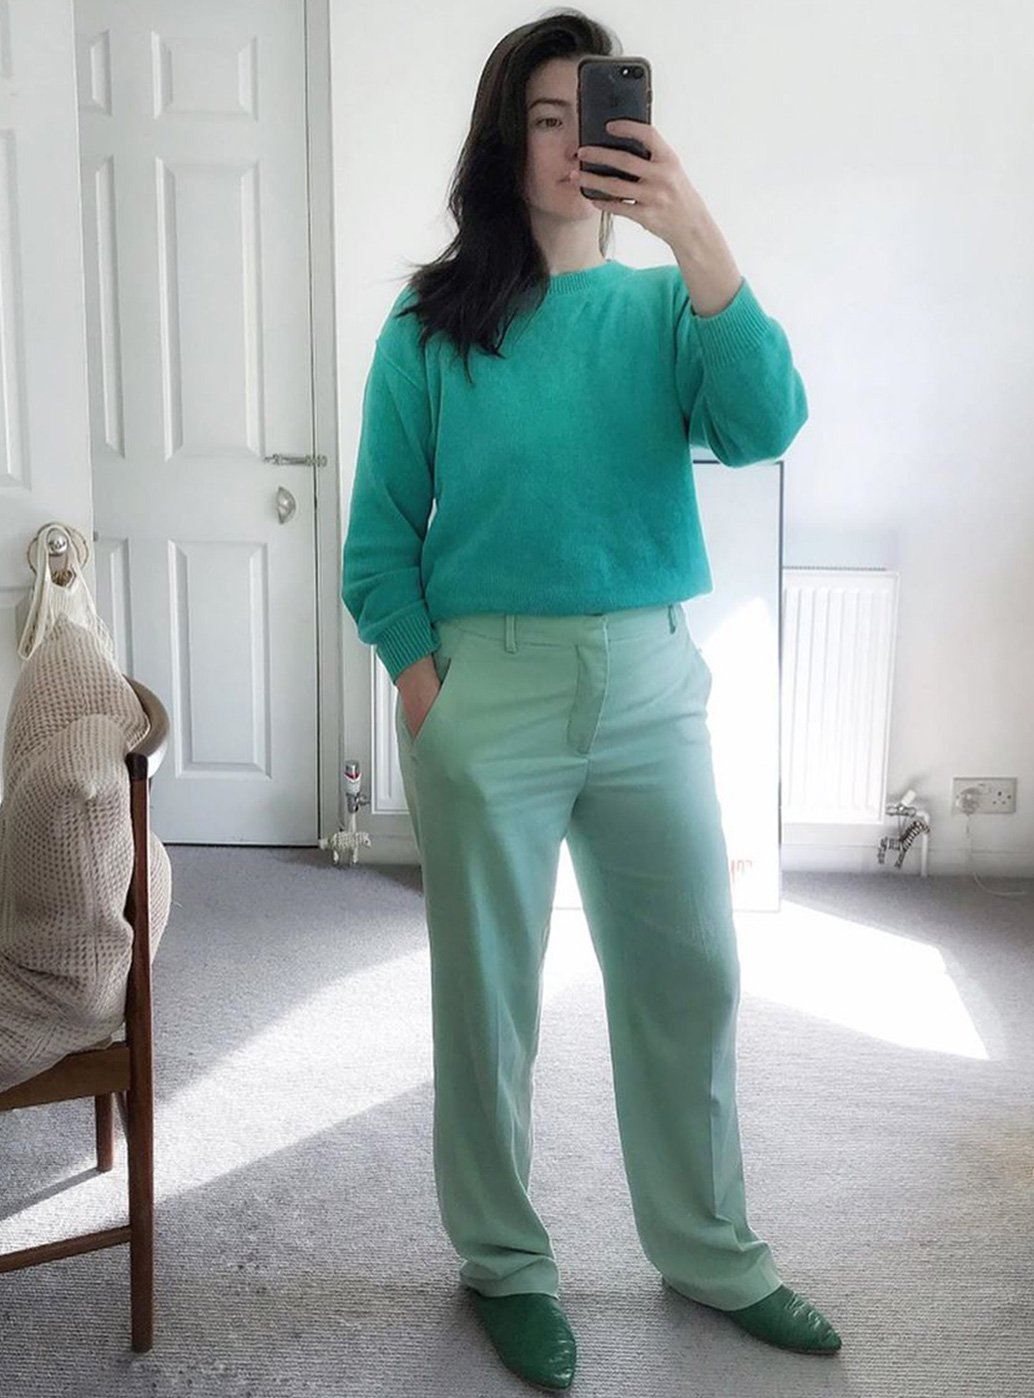 Brand stylist Maddy Moxham takes a selfie  dressed in a serene green outfit at home